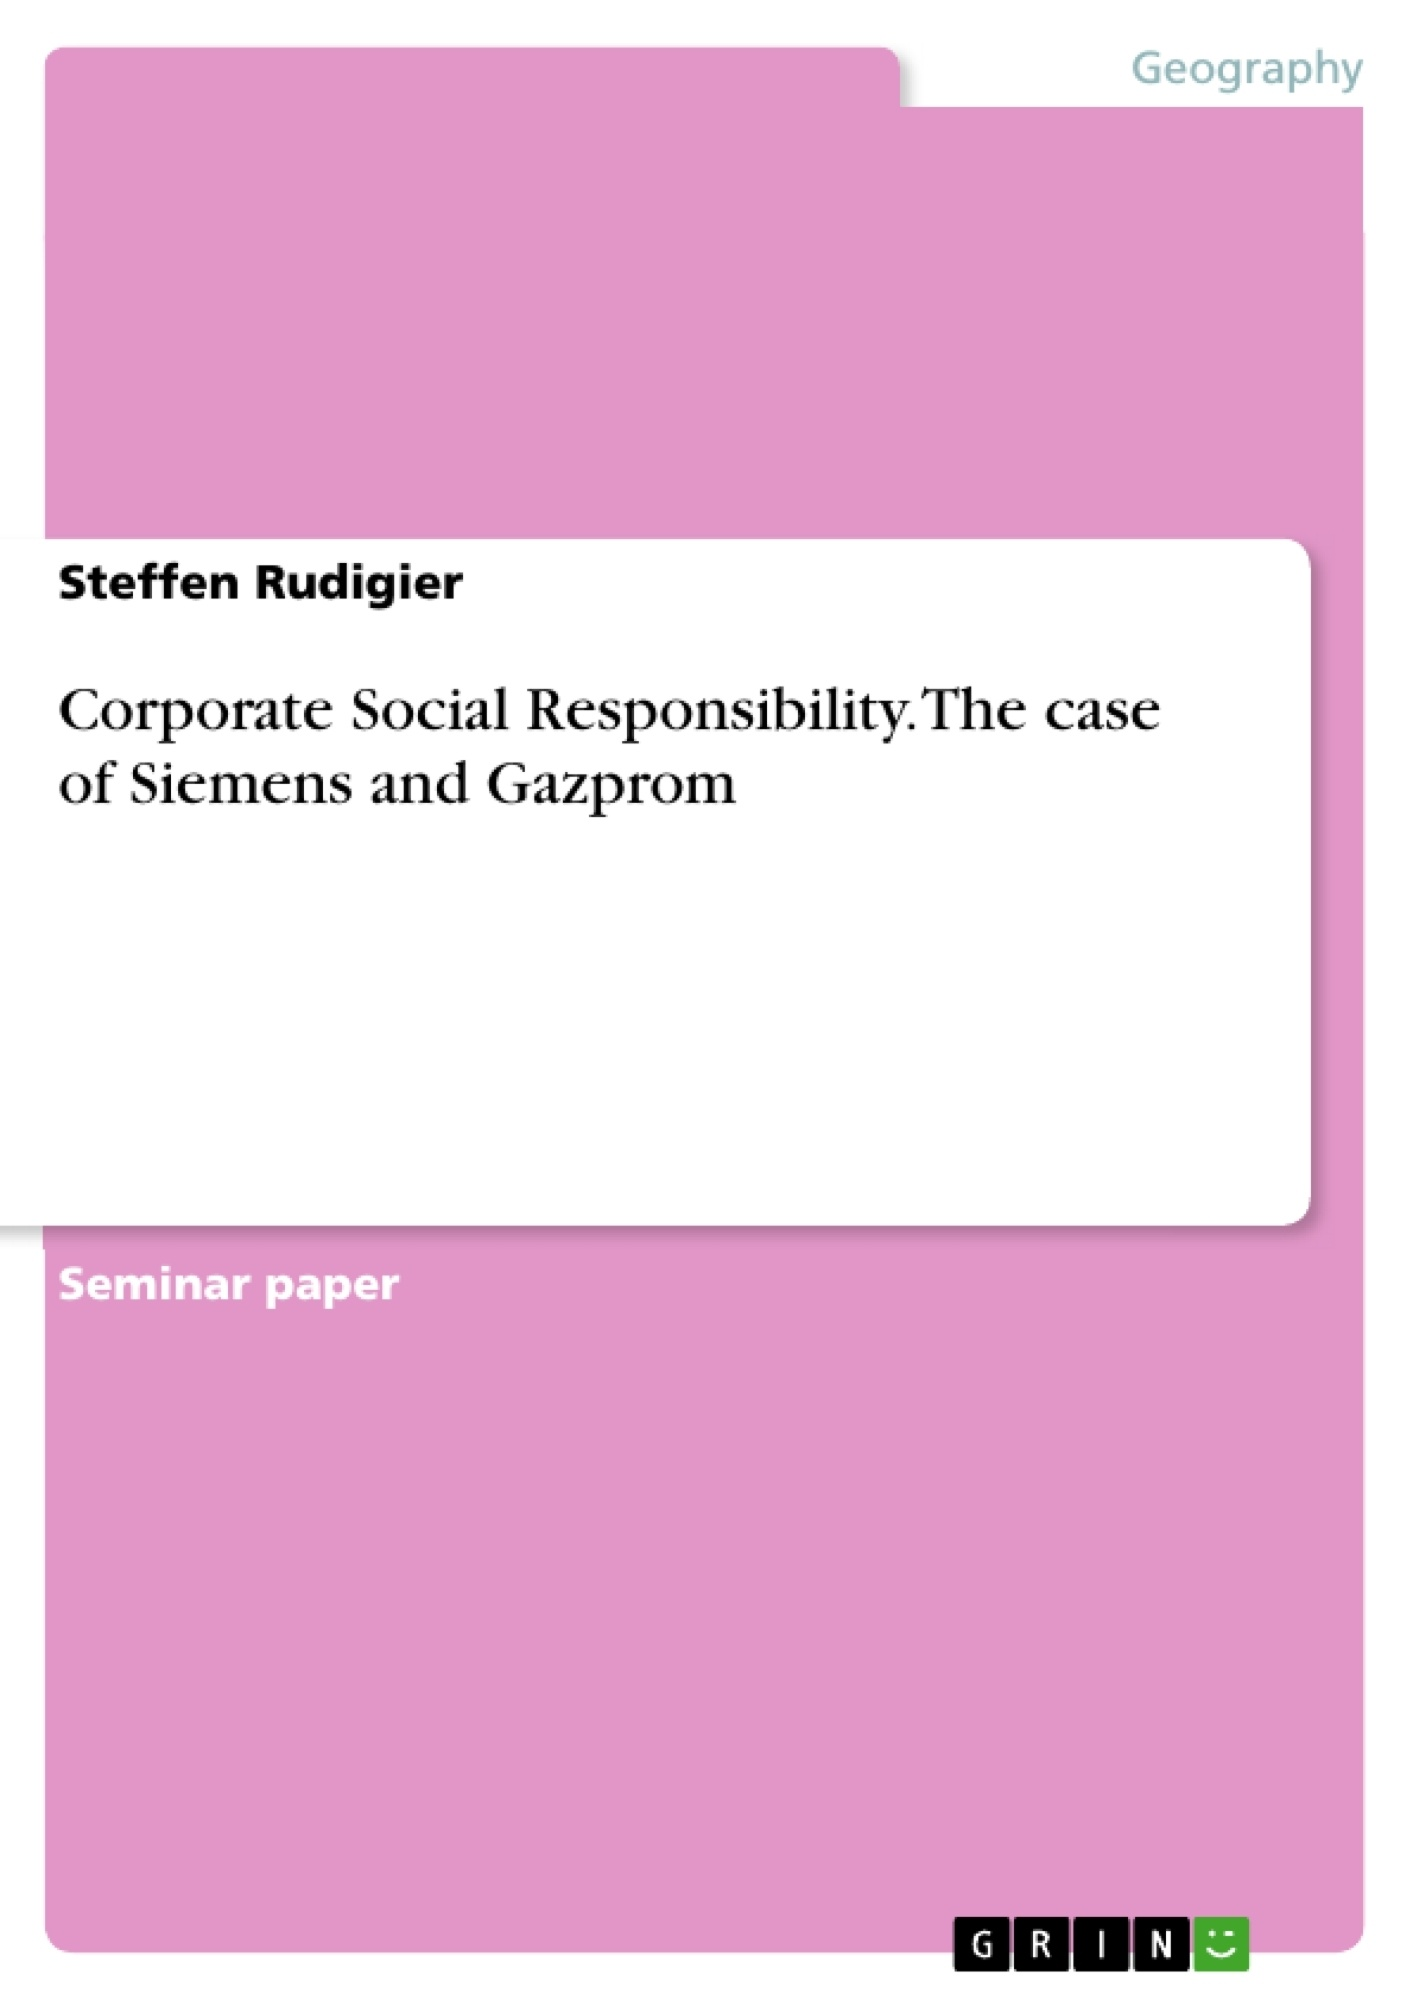 Title: Corporate Social Responsibility. The case of Siemens and Gazprom